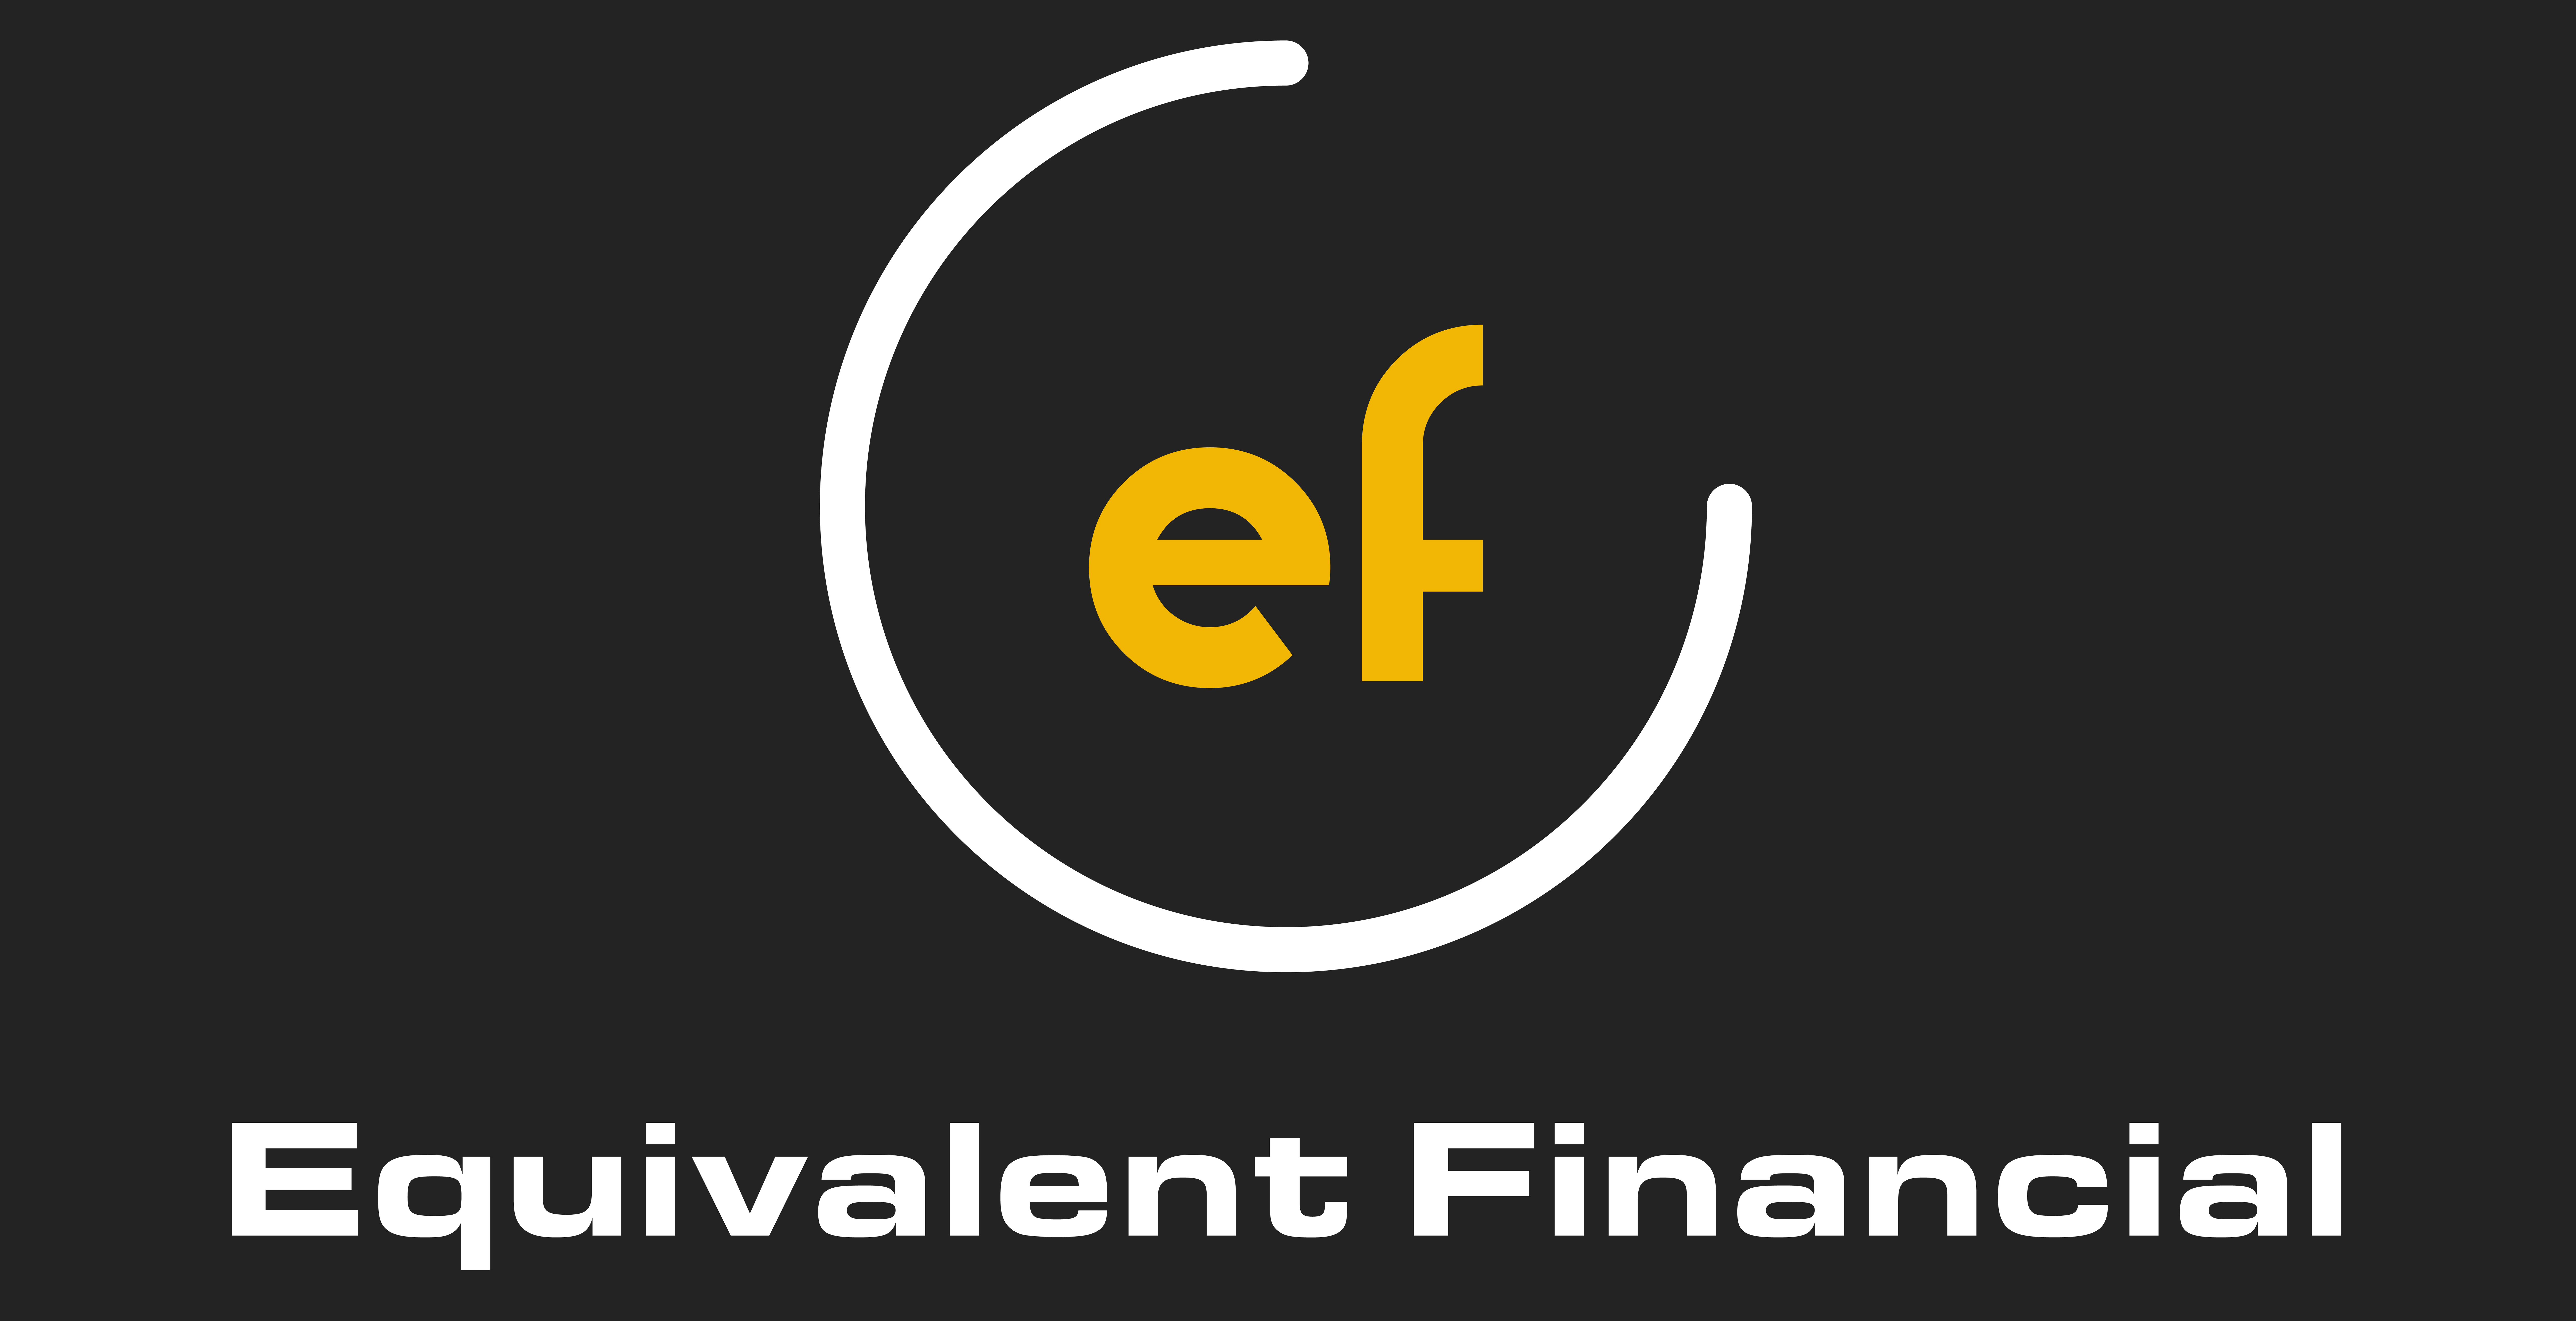 Equivalent Financial